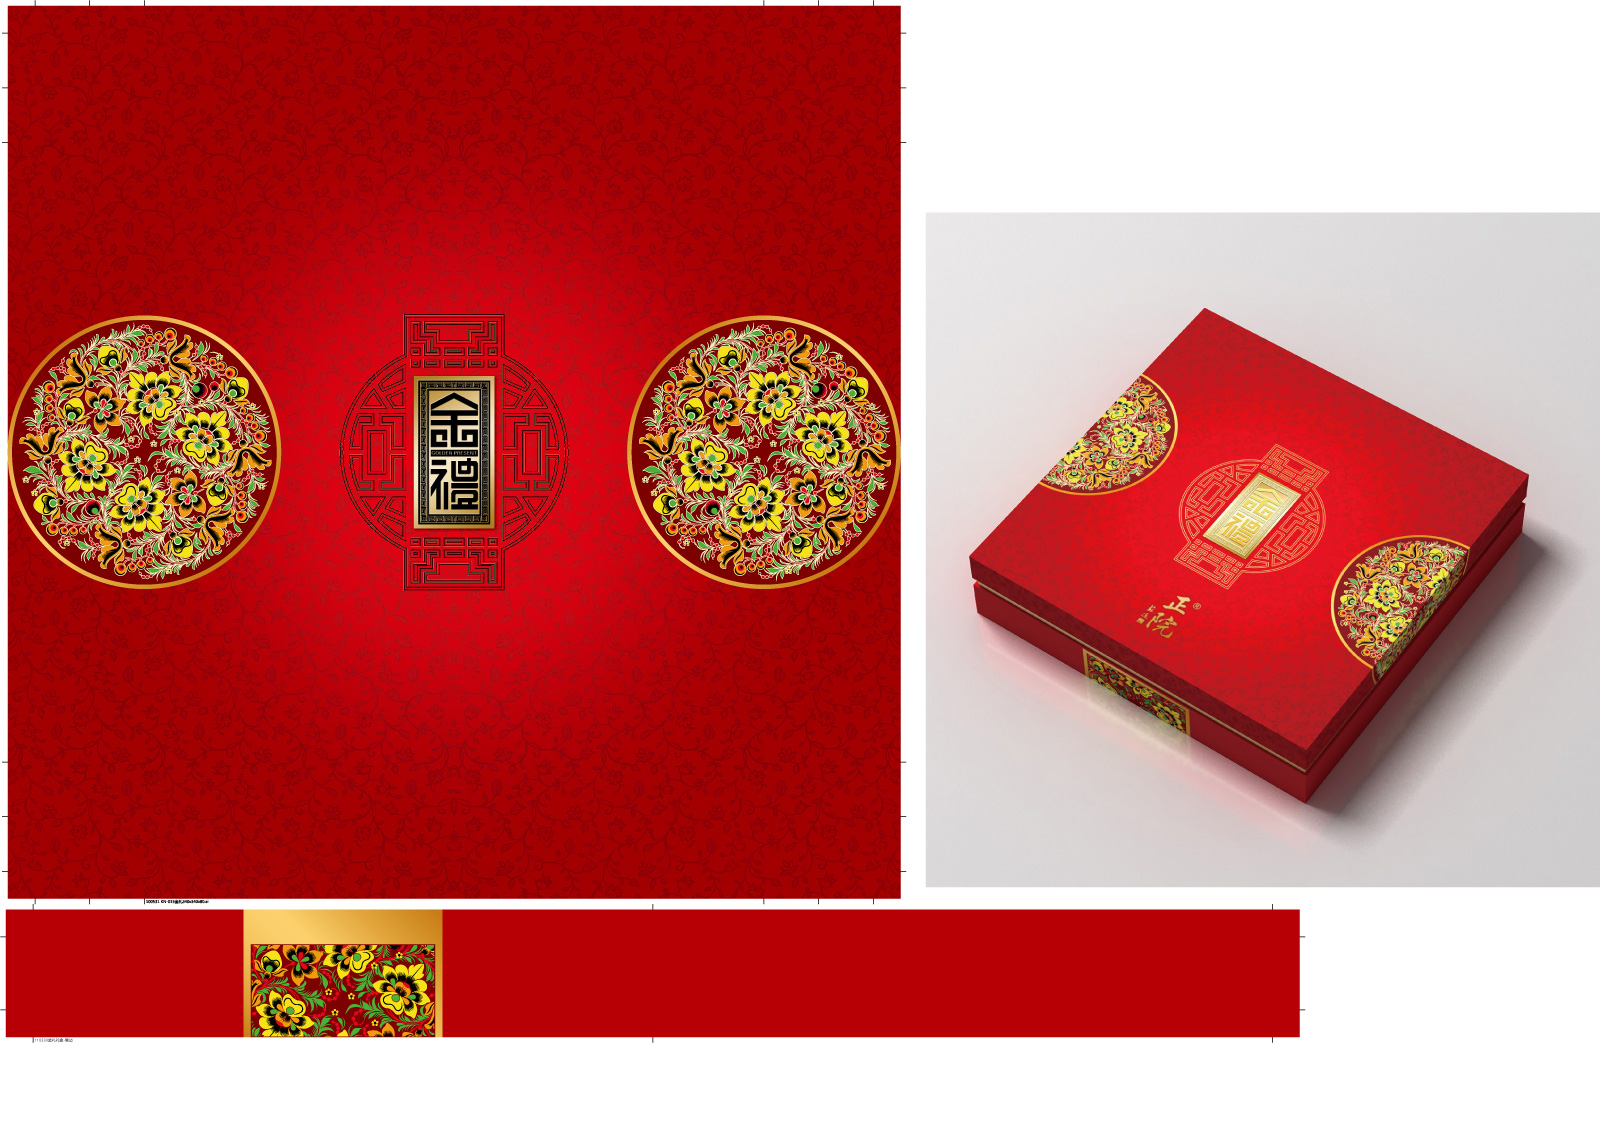 Chinese traditional moon cake packaging gift box design - China Illustrations Vectors ESP Free Download